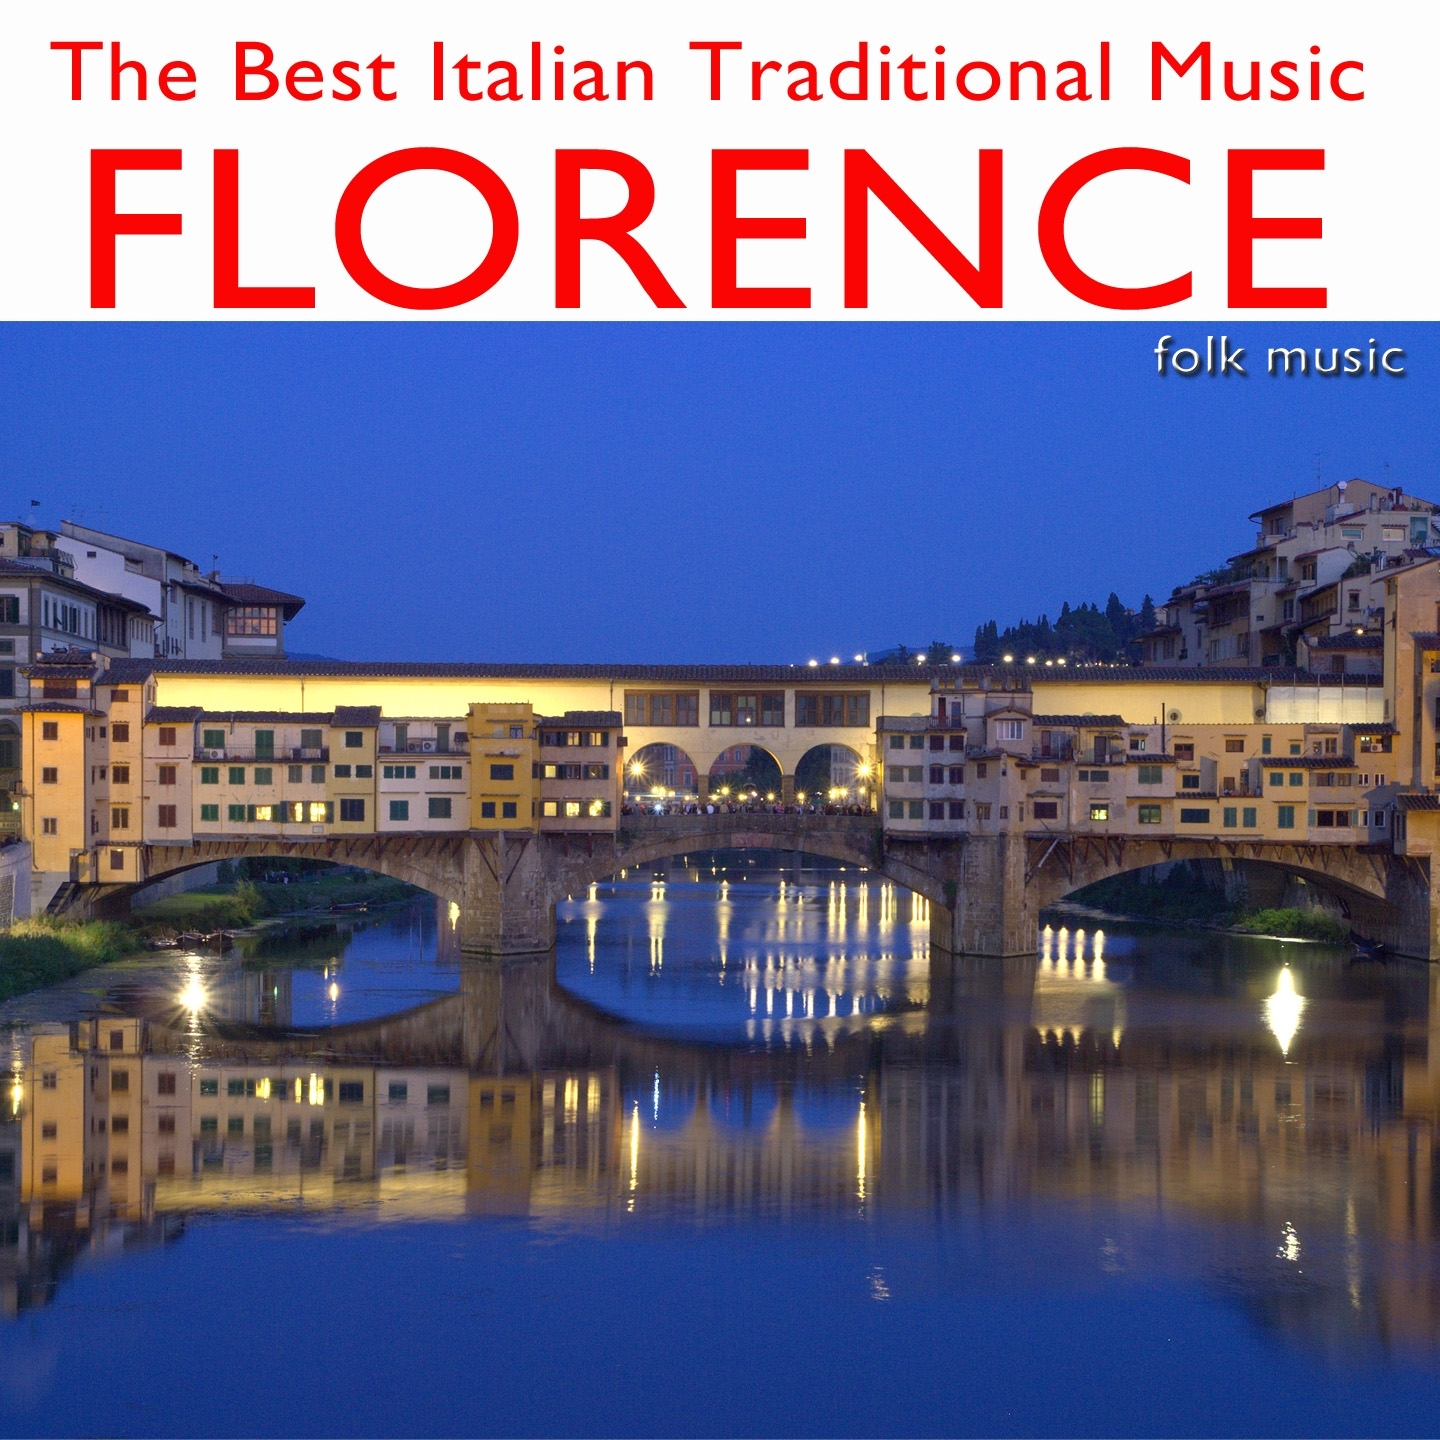 The Best Italian Traditional Music: Florence